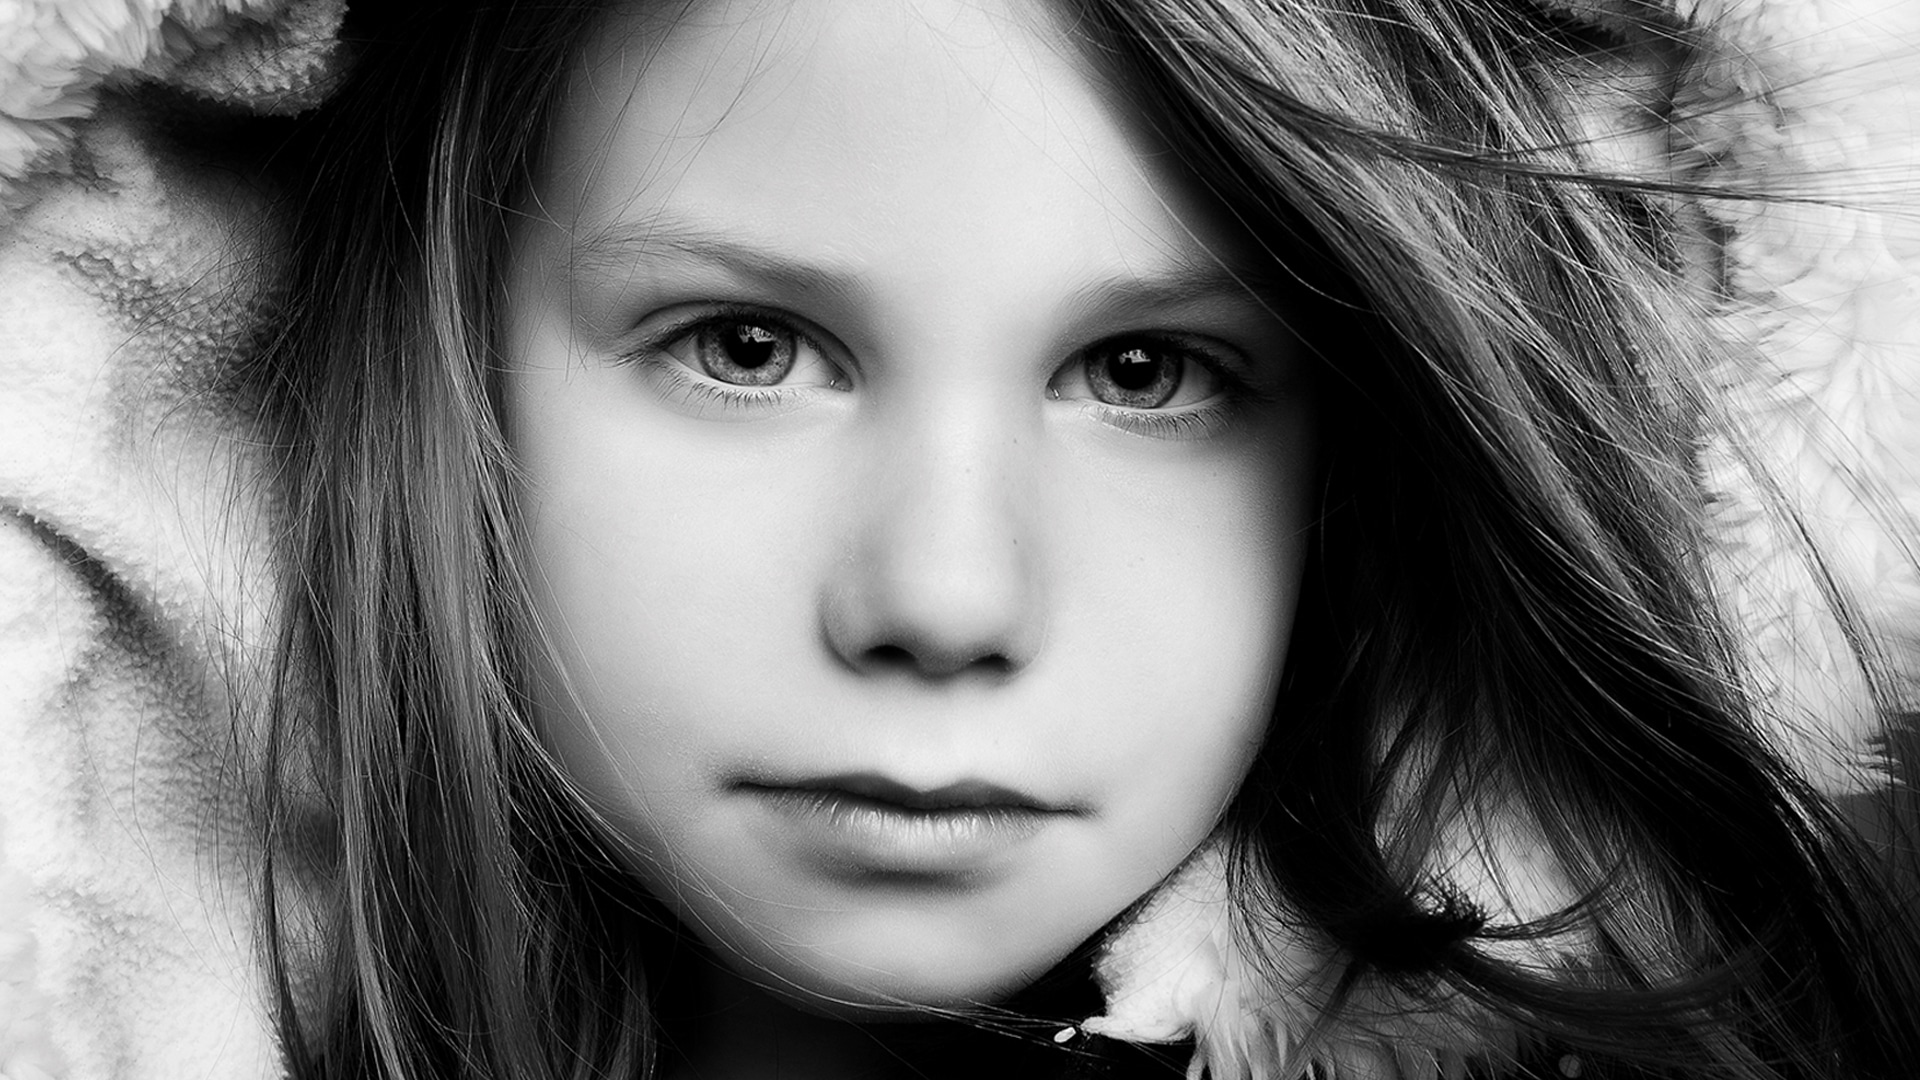 black and white image taken in a studio